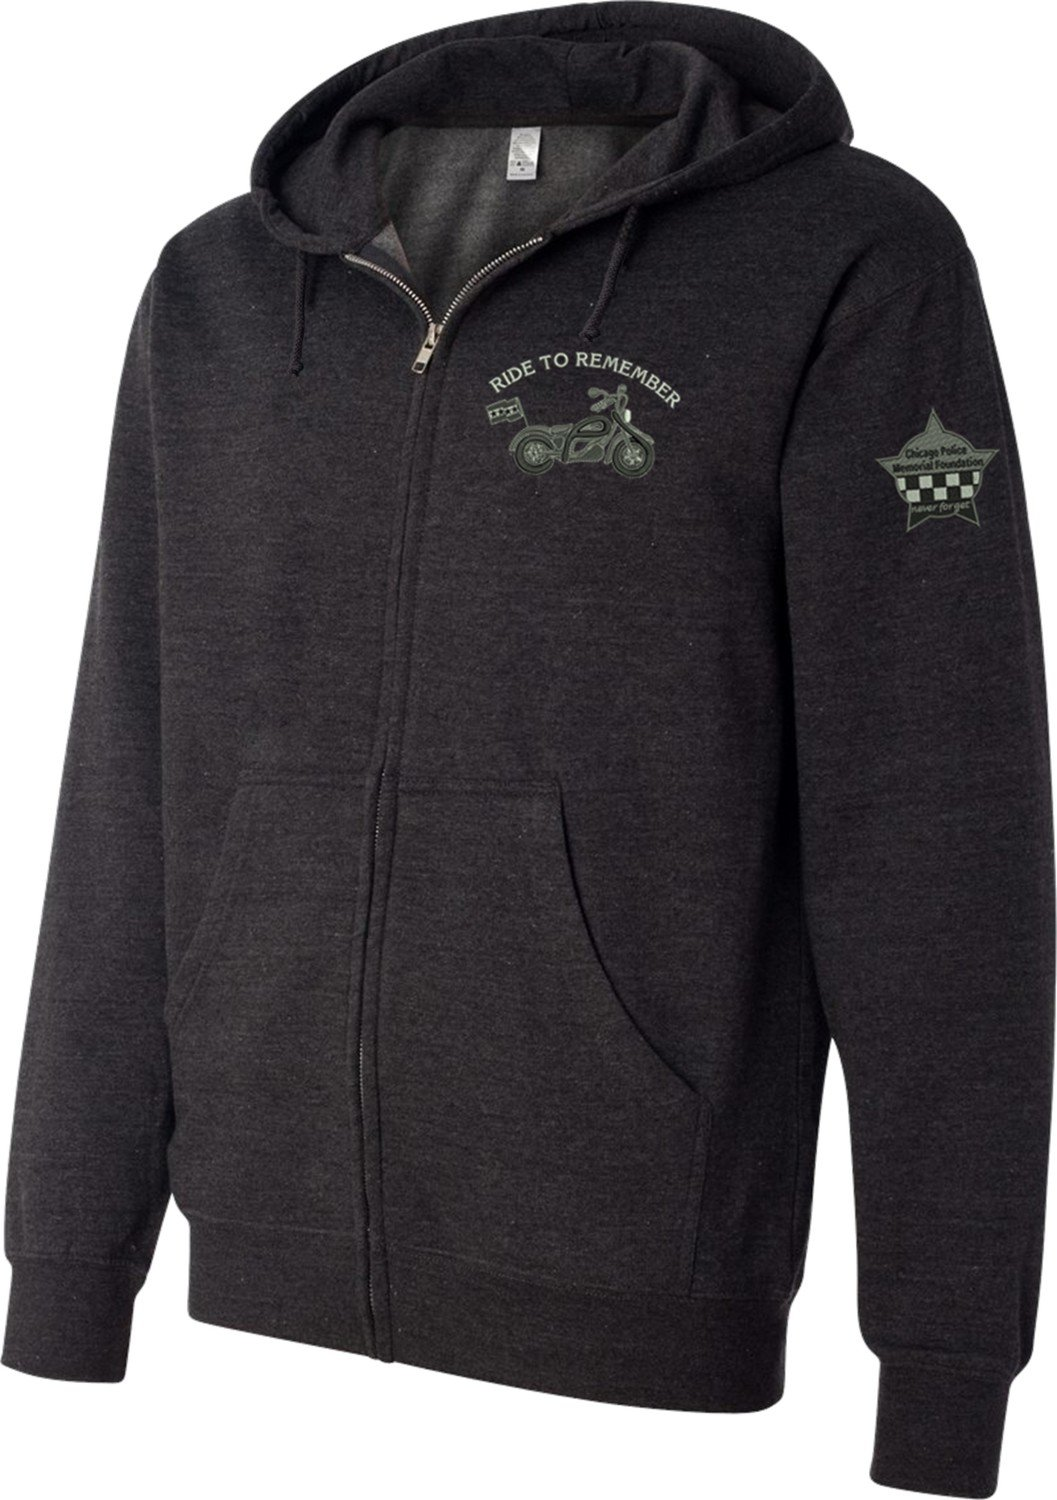 Ride To Remember Midweight Hooded Full-Zip Sweatshirt SS4500Z